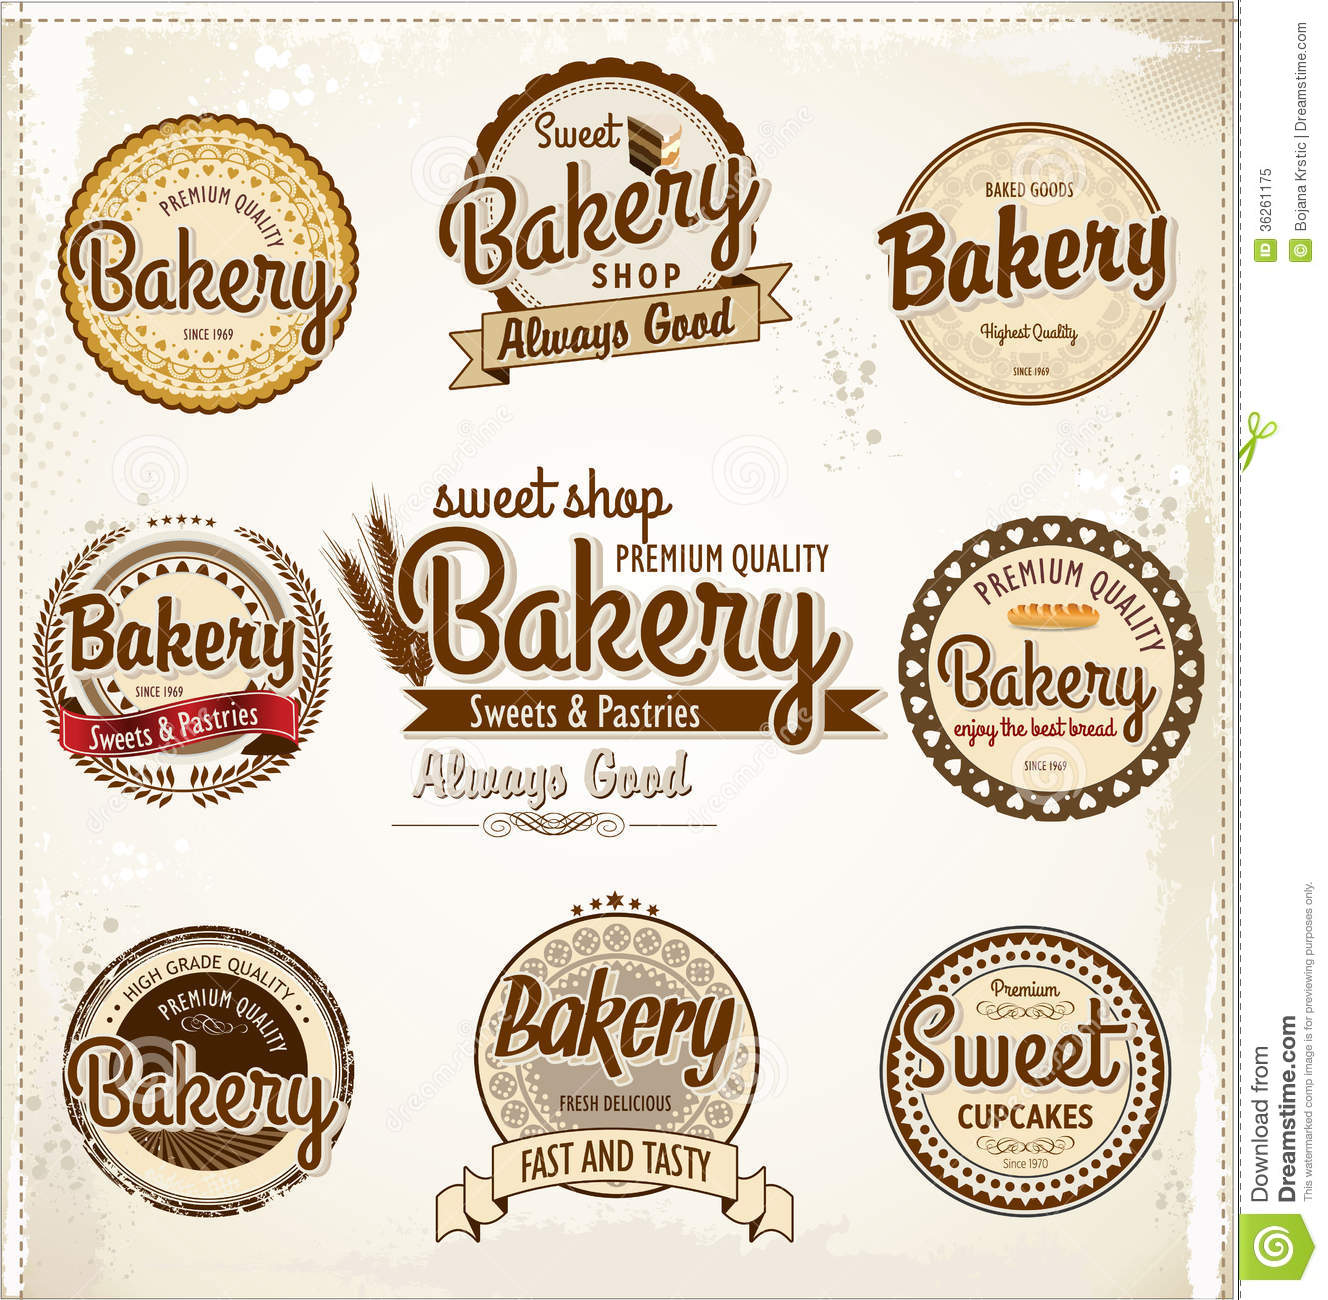 Retro Bakery Badges And Labels Royalty Free Stock Photo